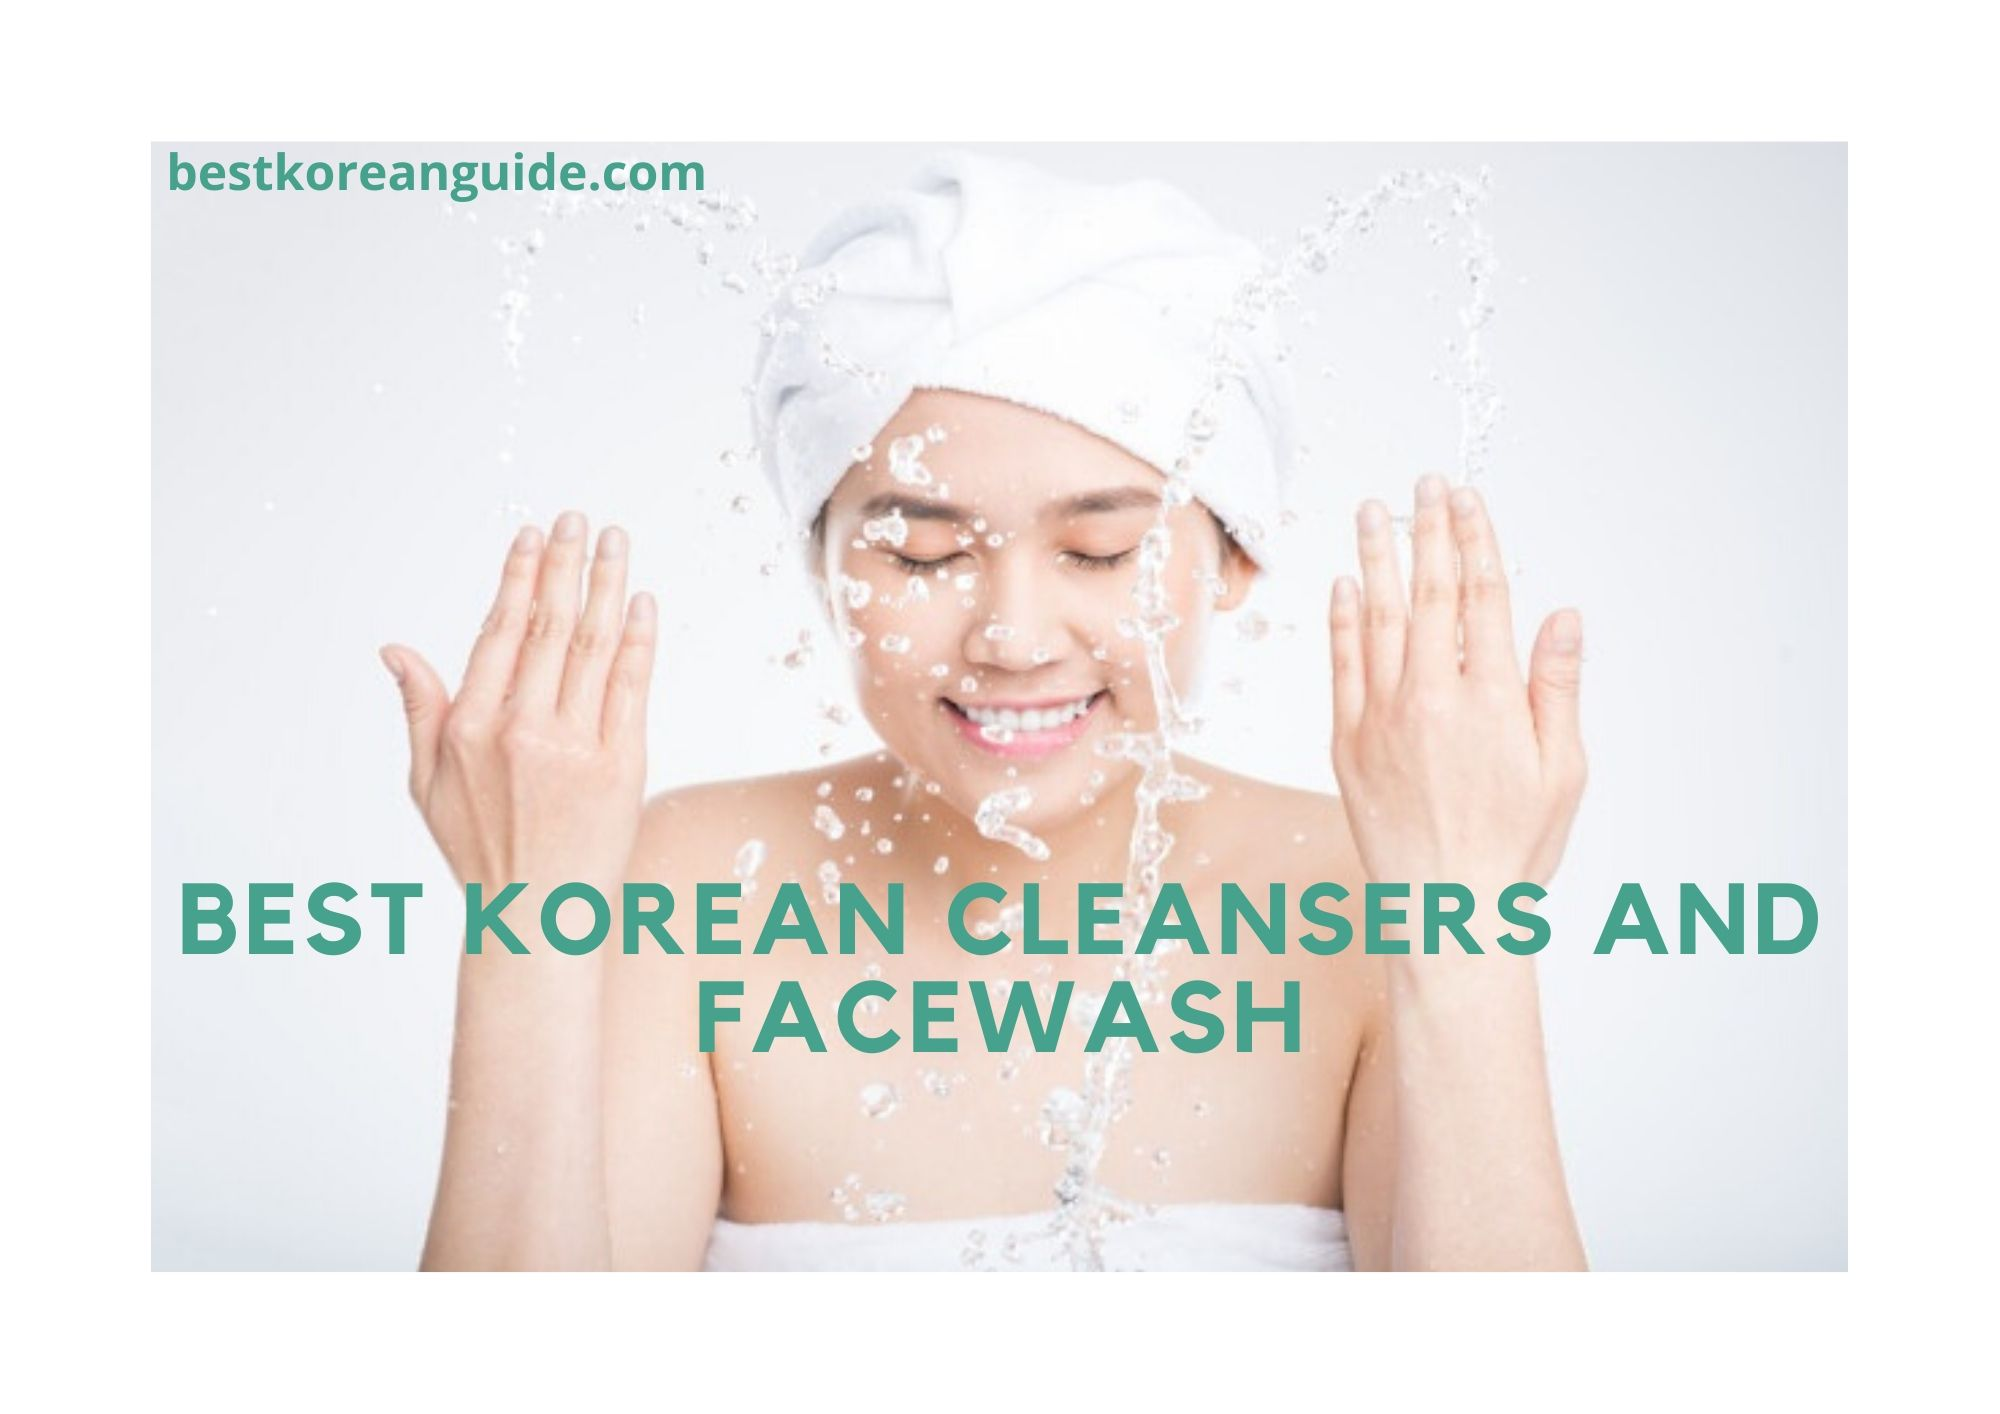 Best korean cleansers and facewash